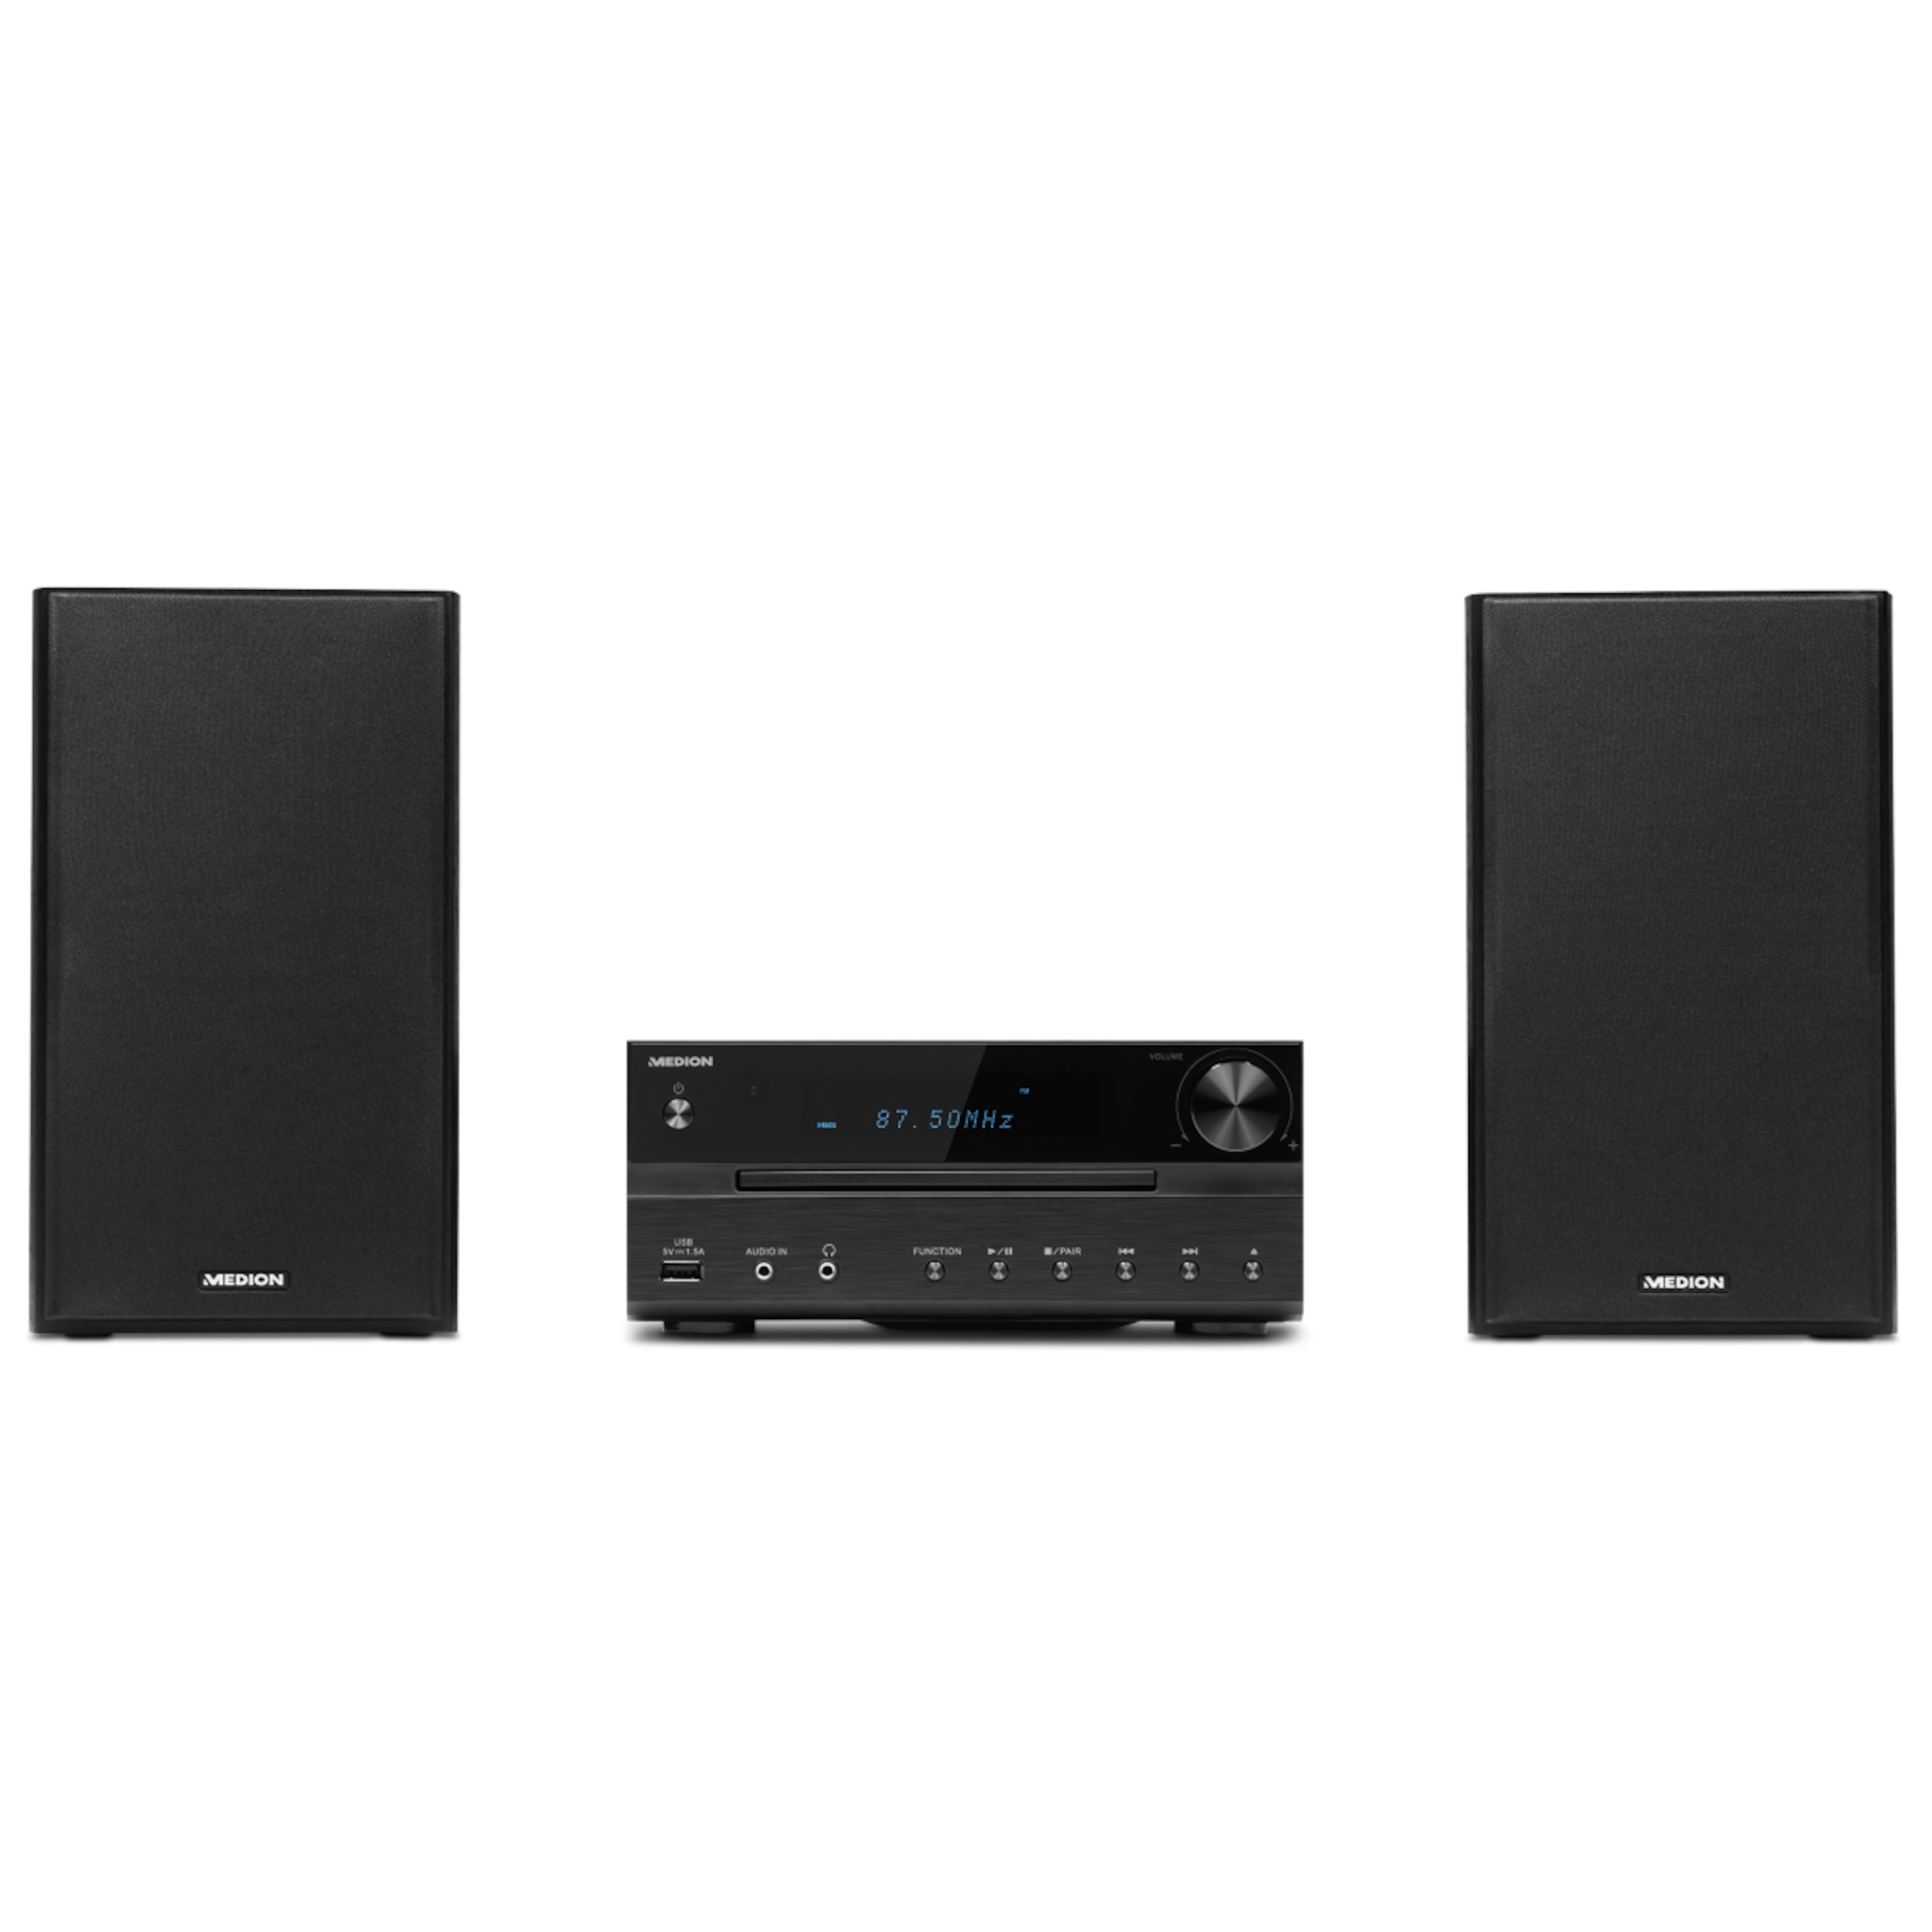 MEDION® LIFE® P64262 Micro-Audio-System mit CD-Player, DAB+, Bluetooth® 4.1, USB-Anschluss & -Ladefunktion, AUX, PLL-UKW Stereo-Radio, 2 x 15 W RMS